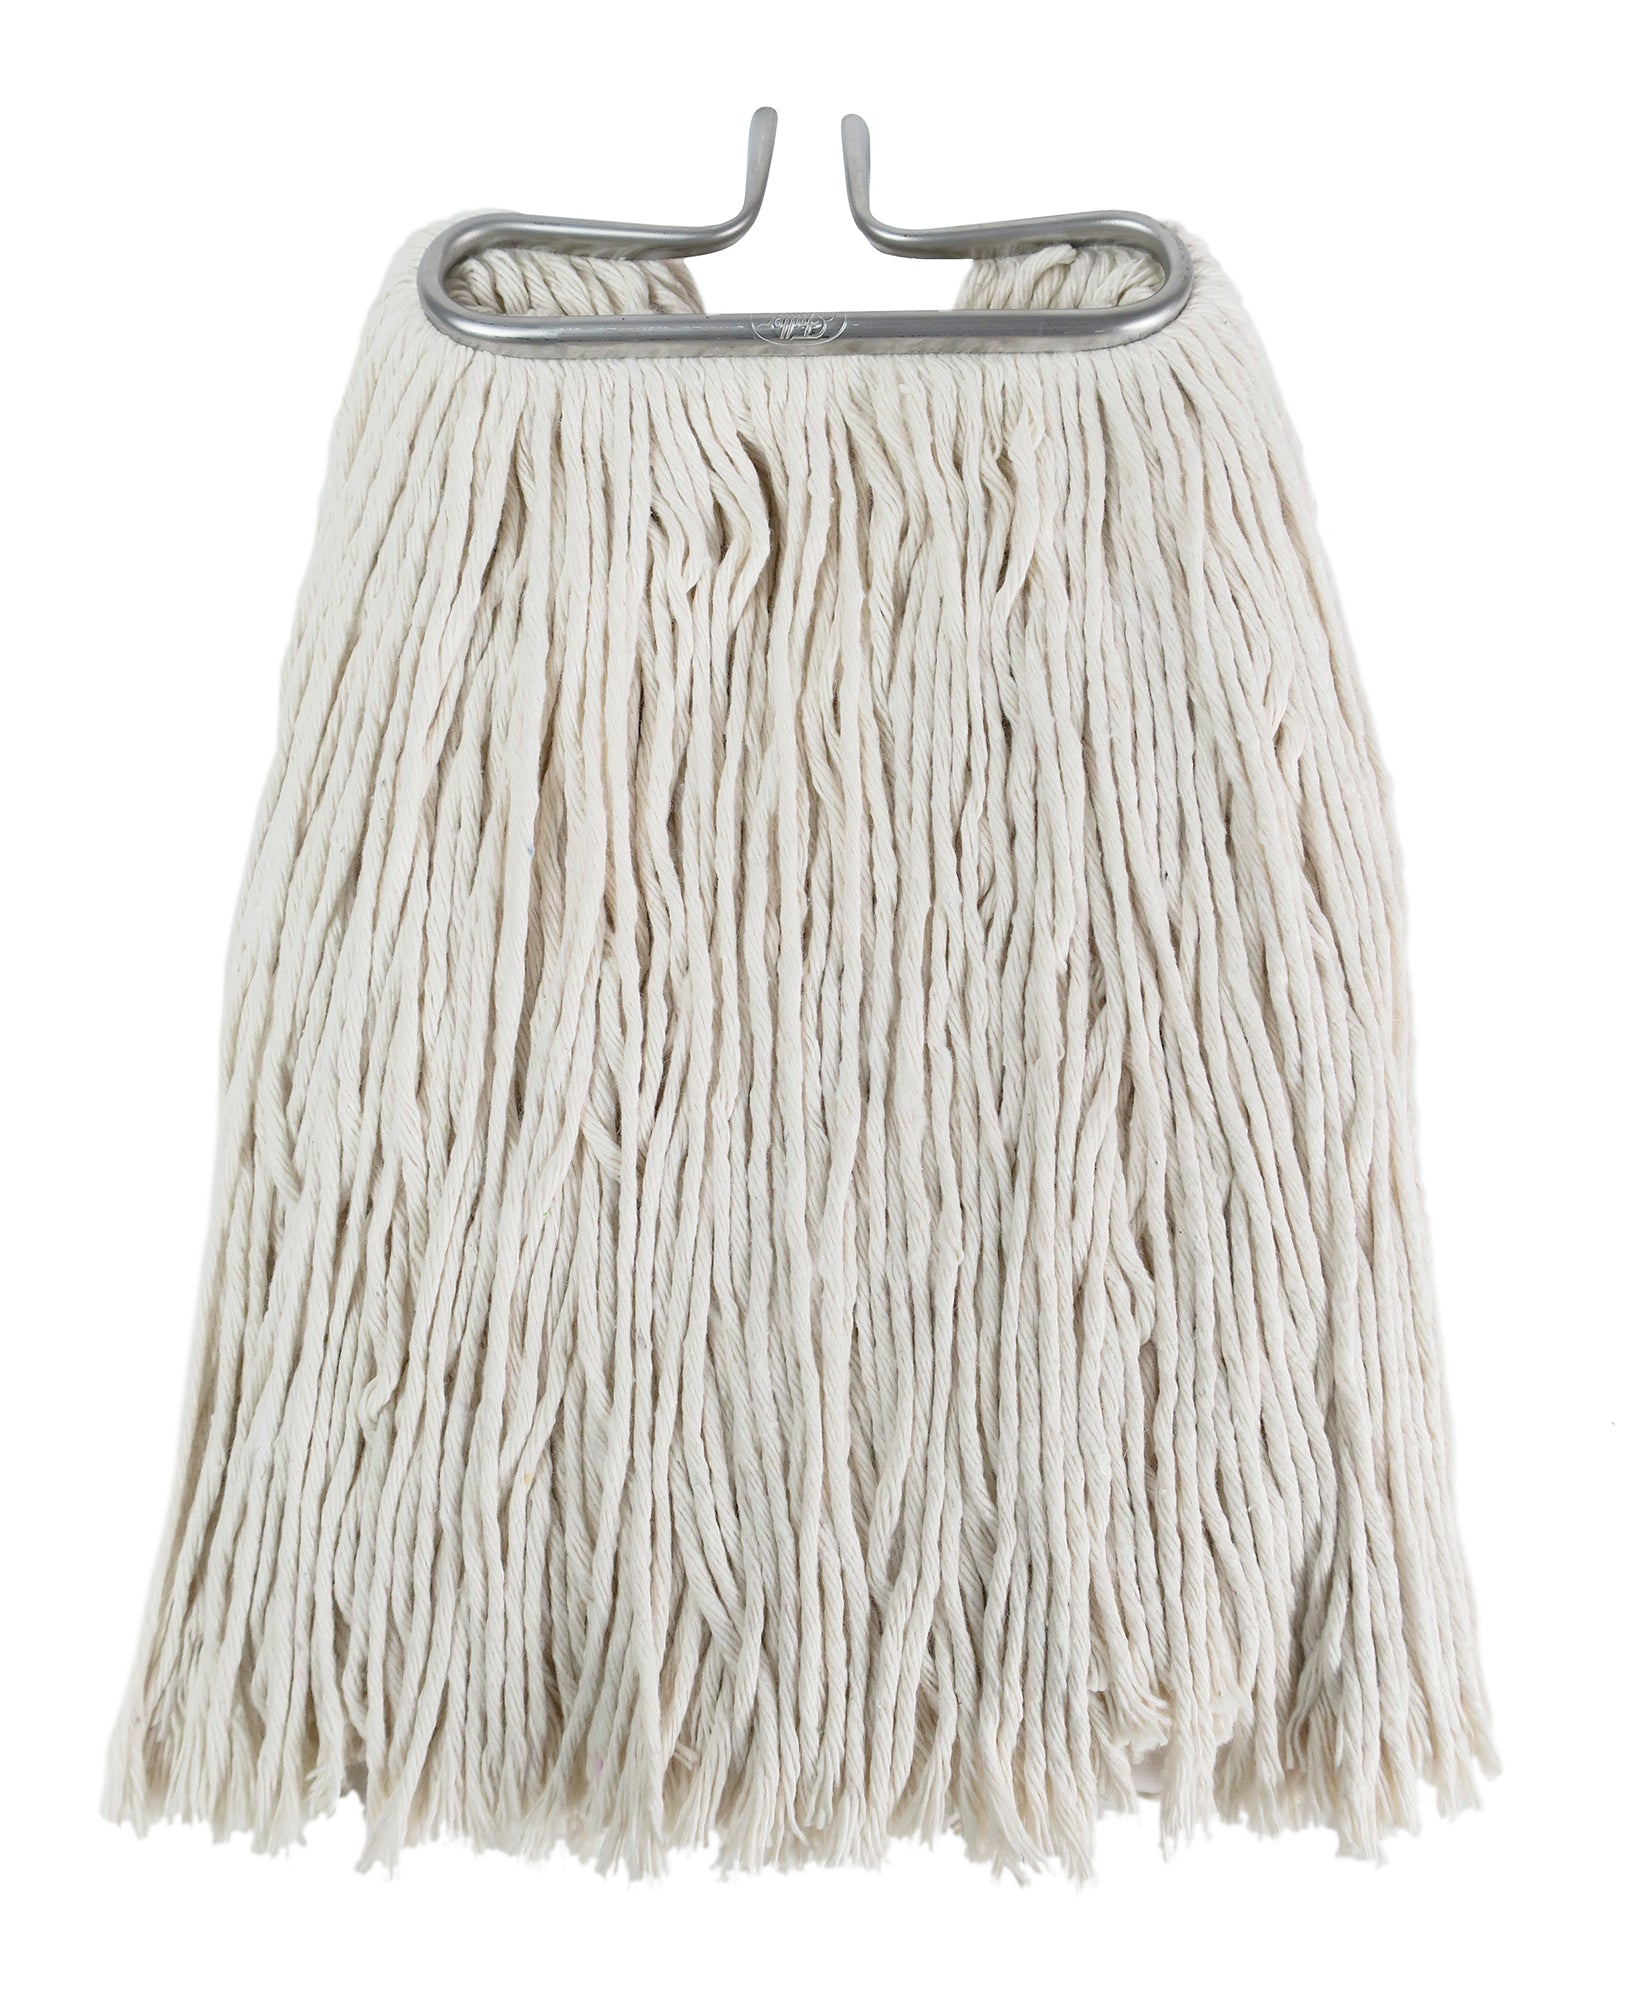 Wet Mop Jumbo Replacement Head